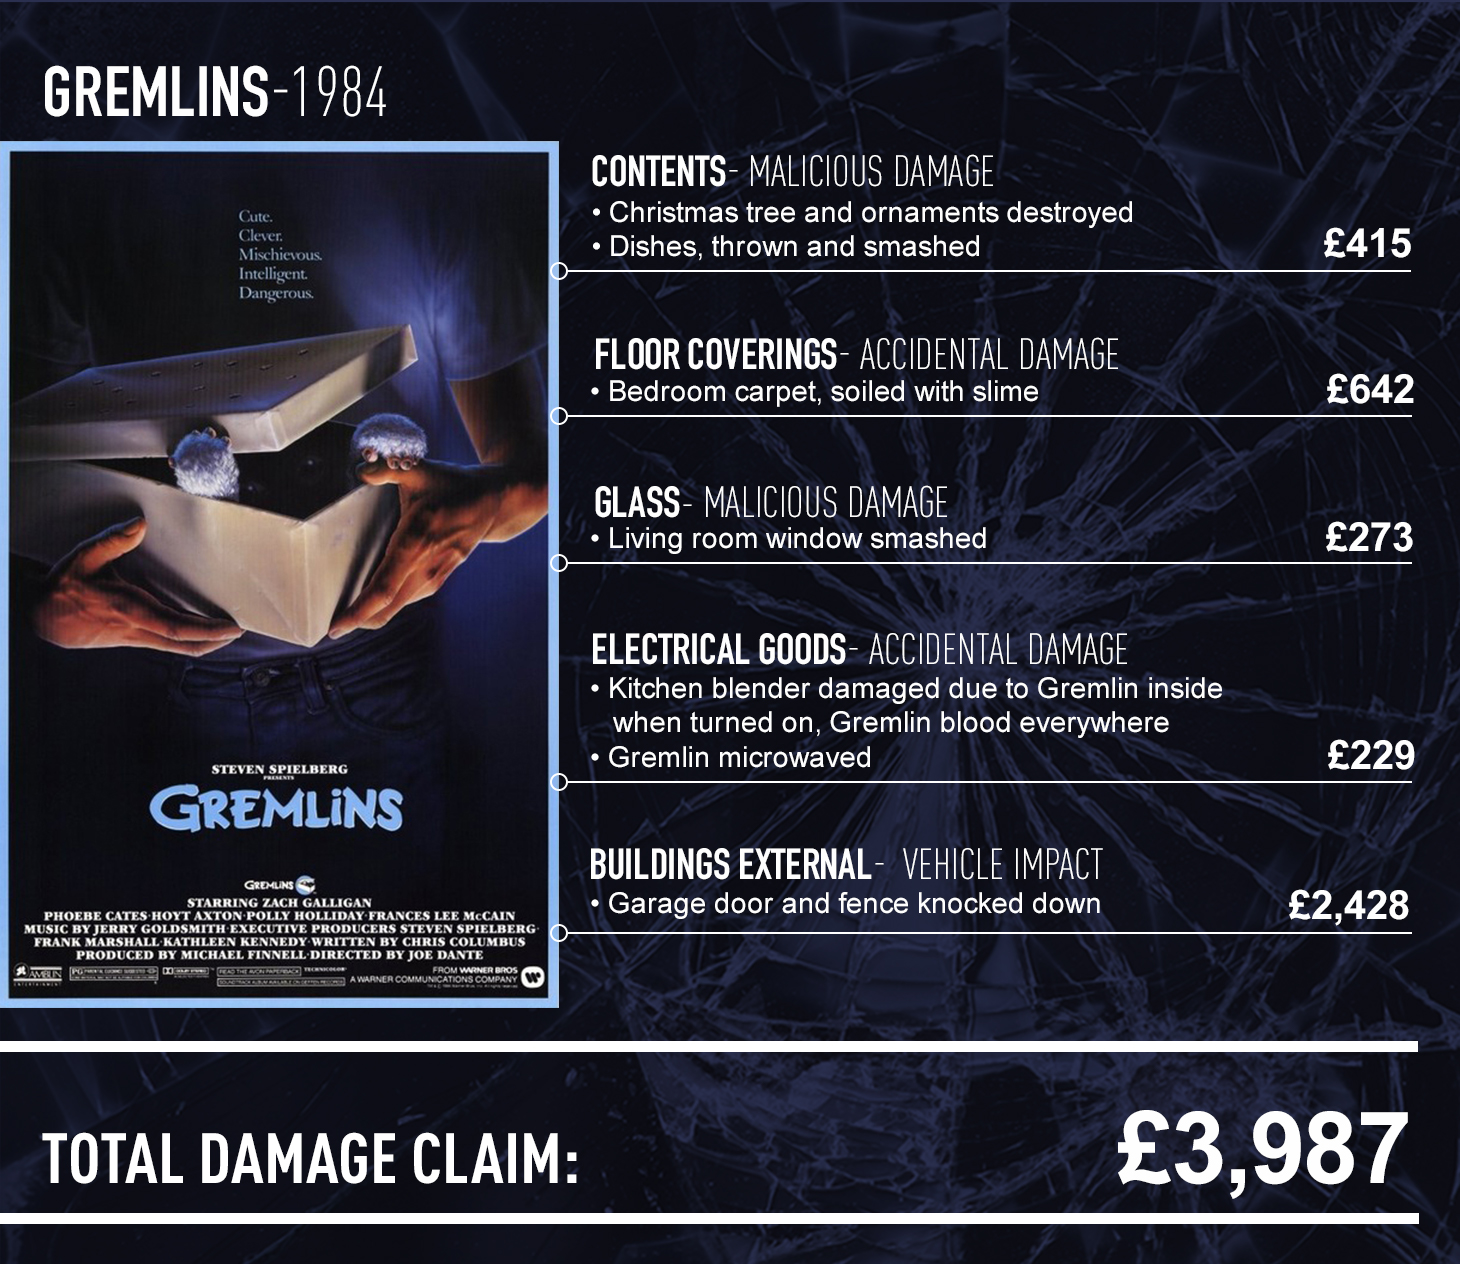 Gremlins claims report